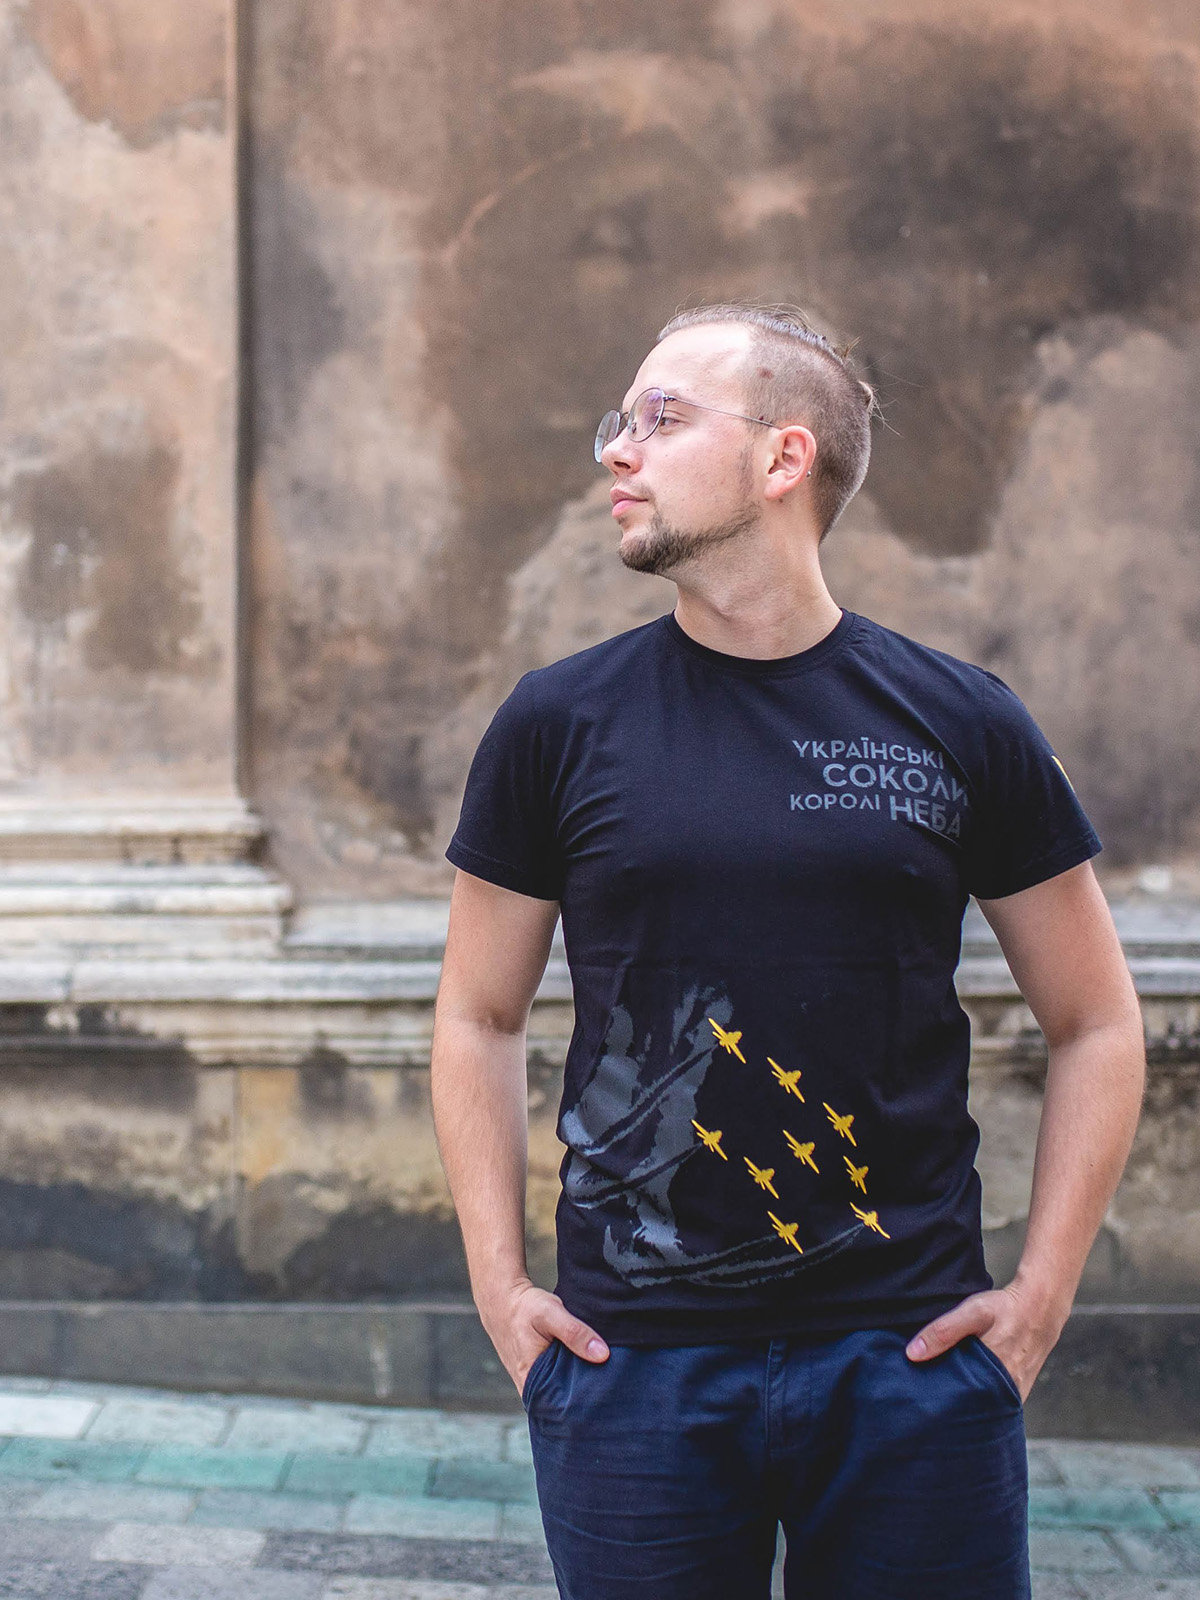 Men's T-Shirt Kings Of The Sky. Color black.  Size worn by the model: M.